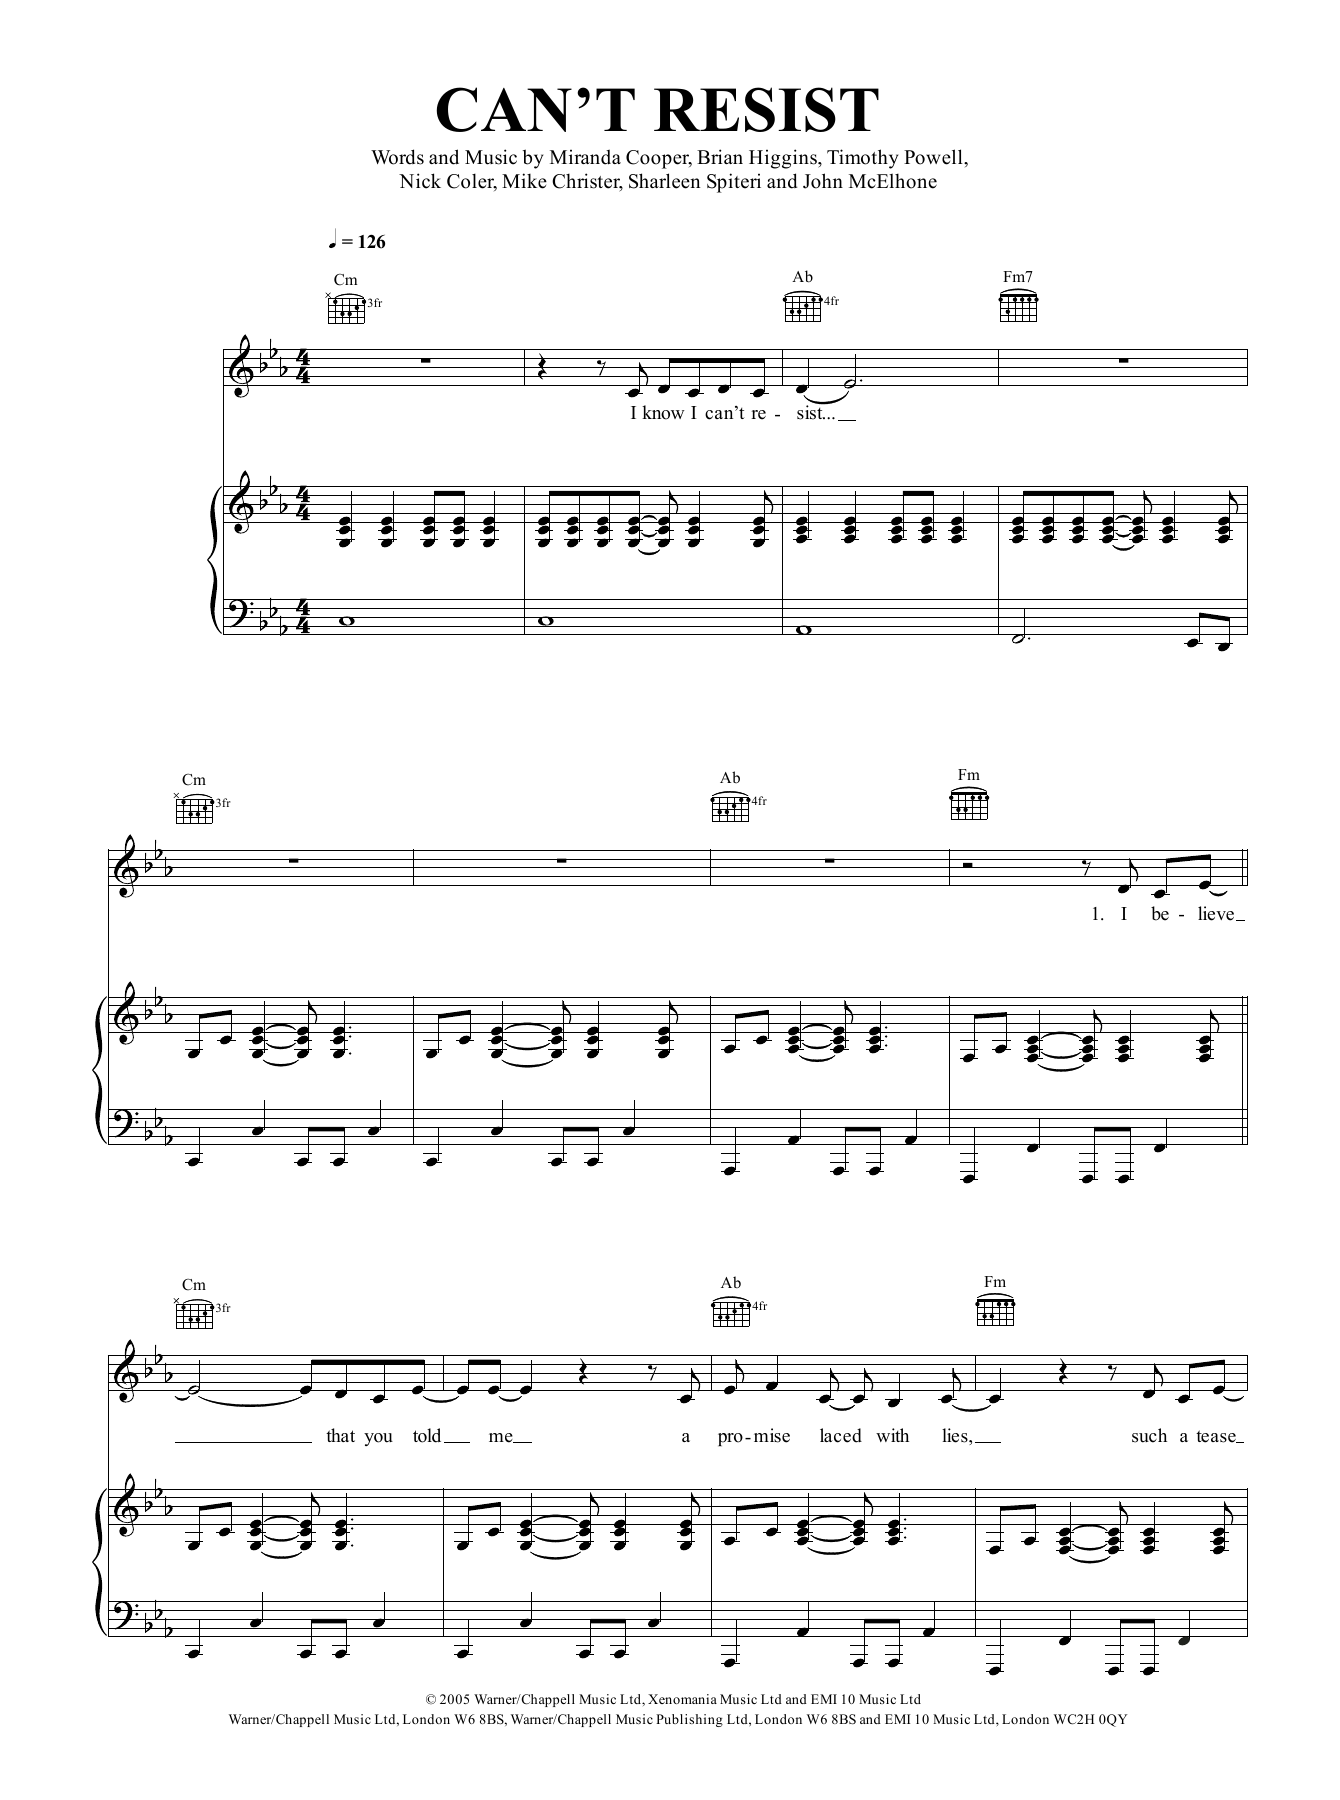 Texas Can't Resist sheet music notes and chords. Download Printable PDF.